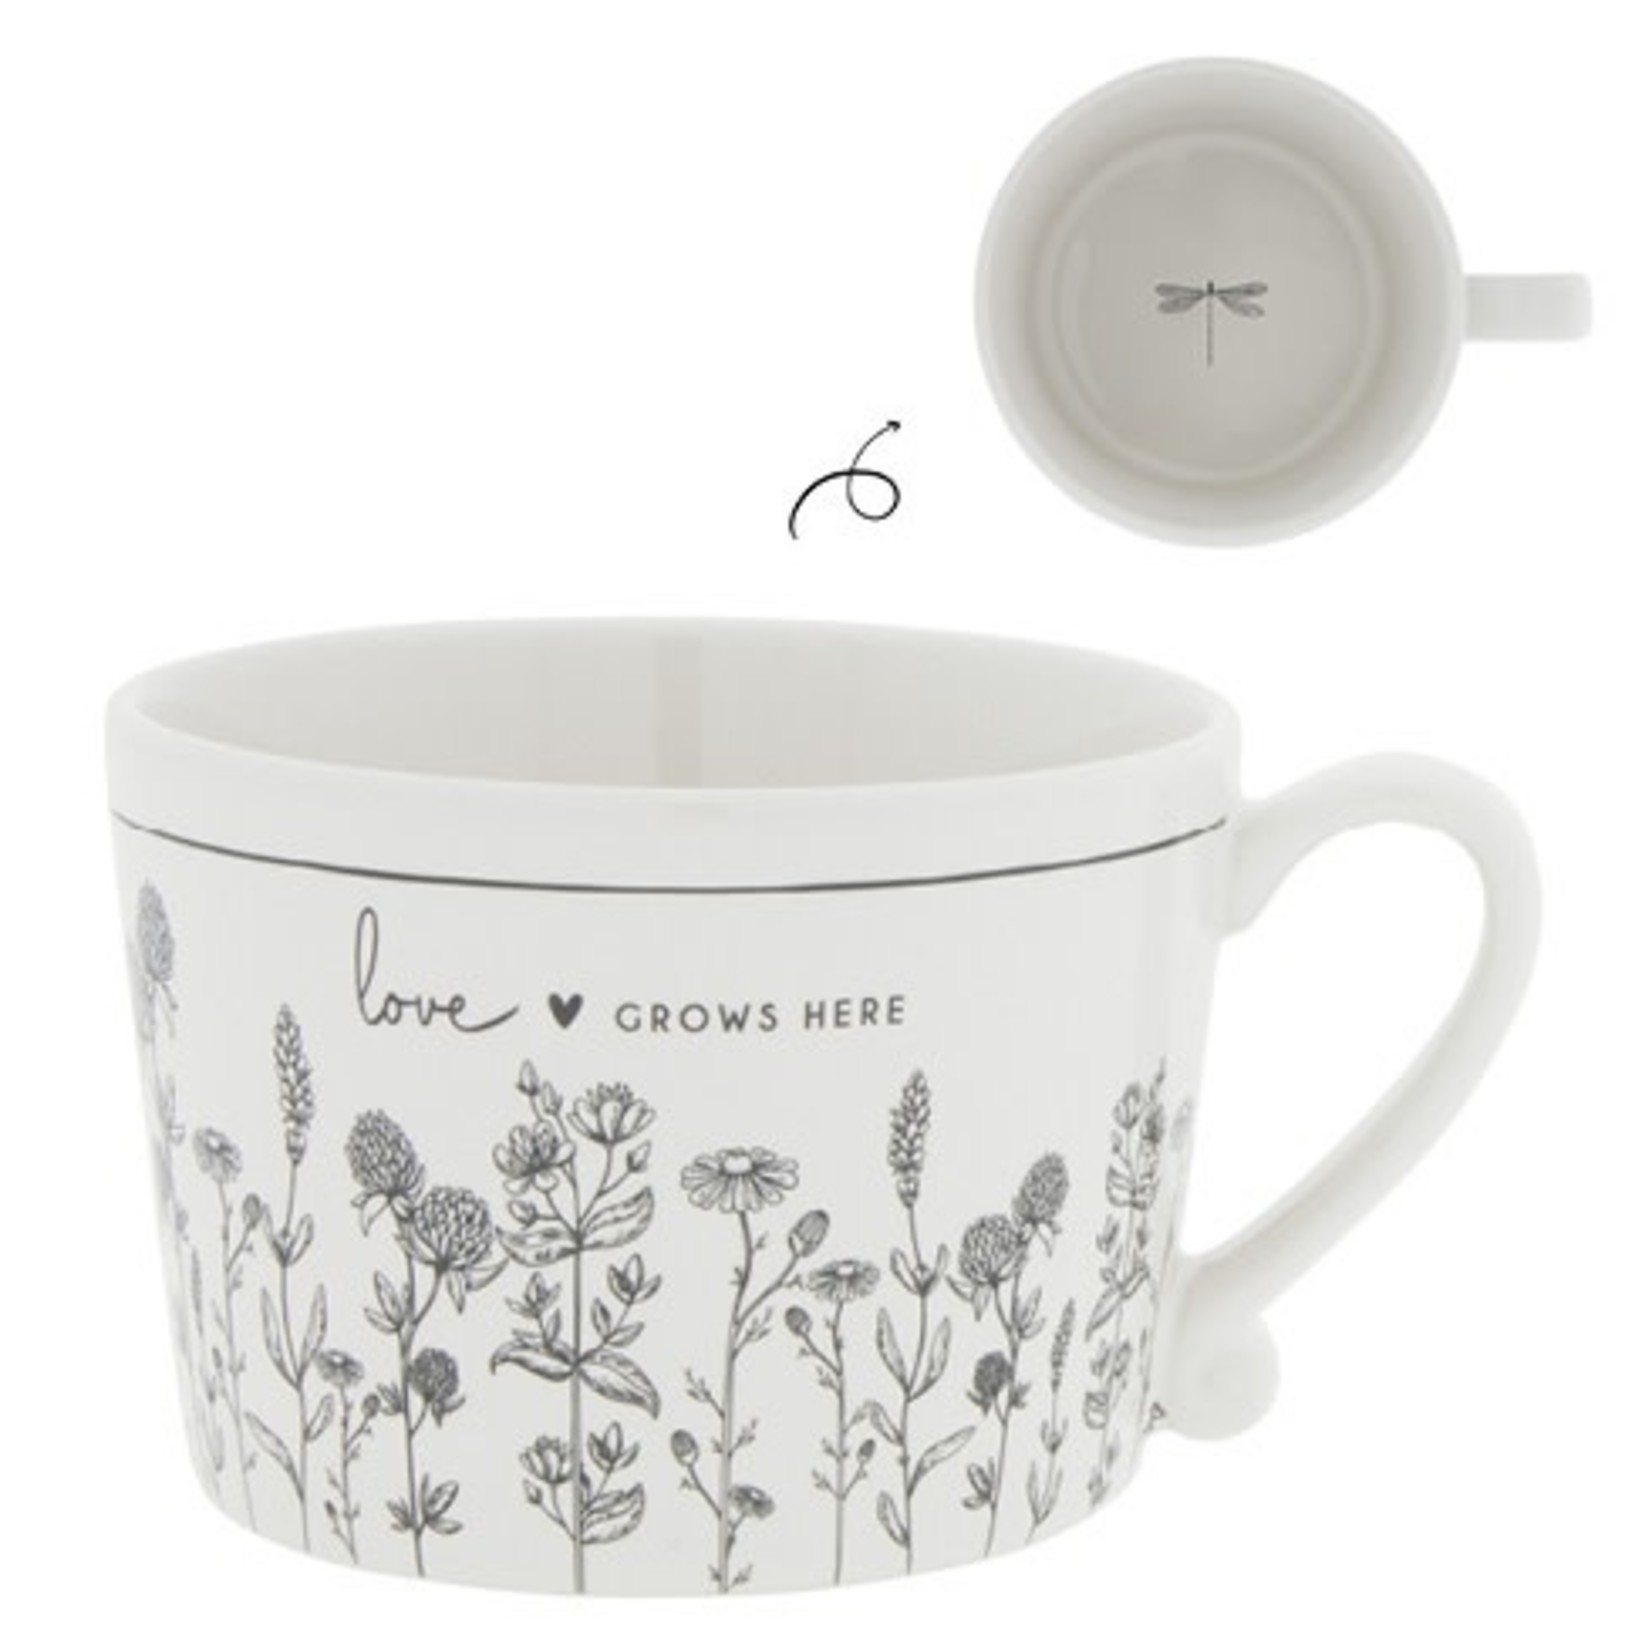 Bastion Collections Cup Love grows here white/black 10x8x7 cm